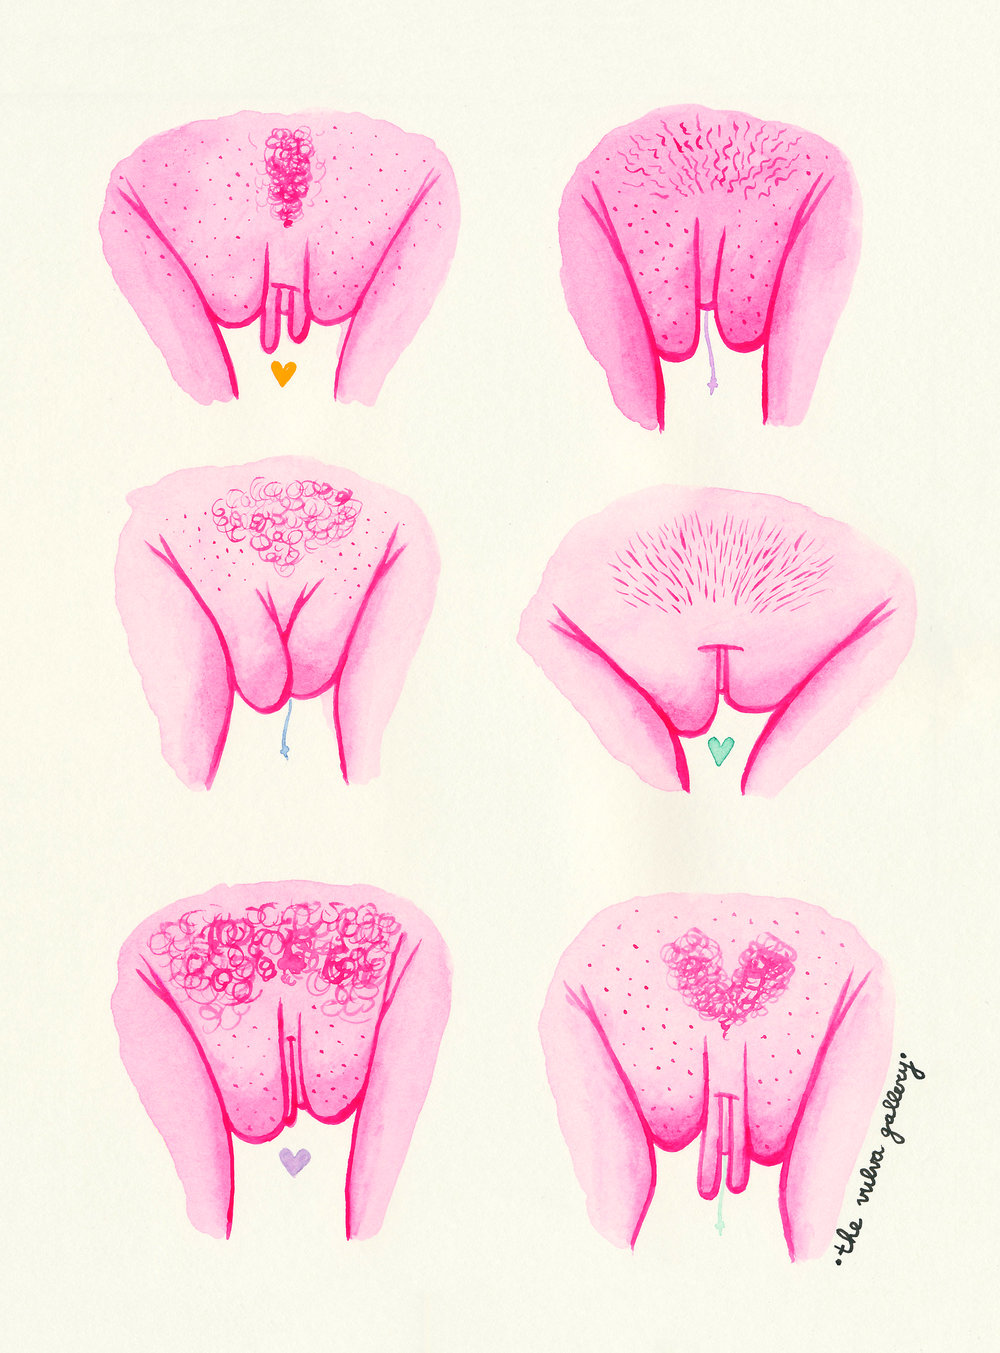 The Vulva Gallery for FEM Project